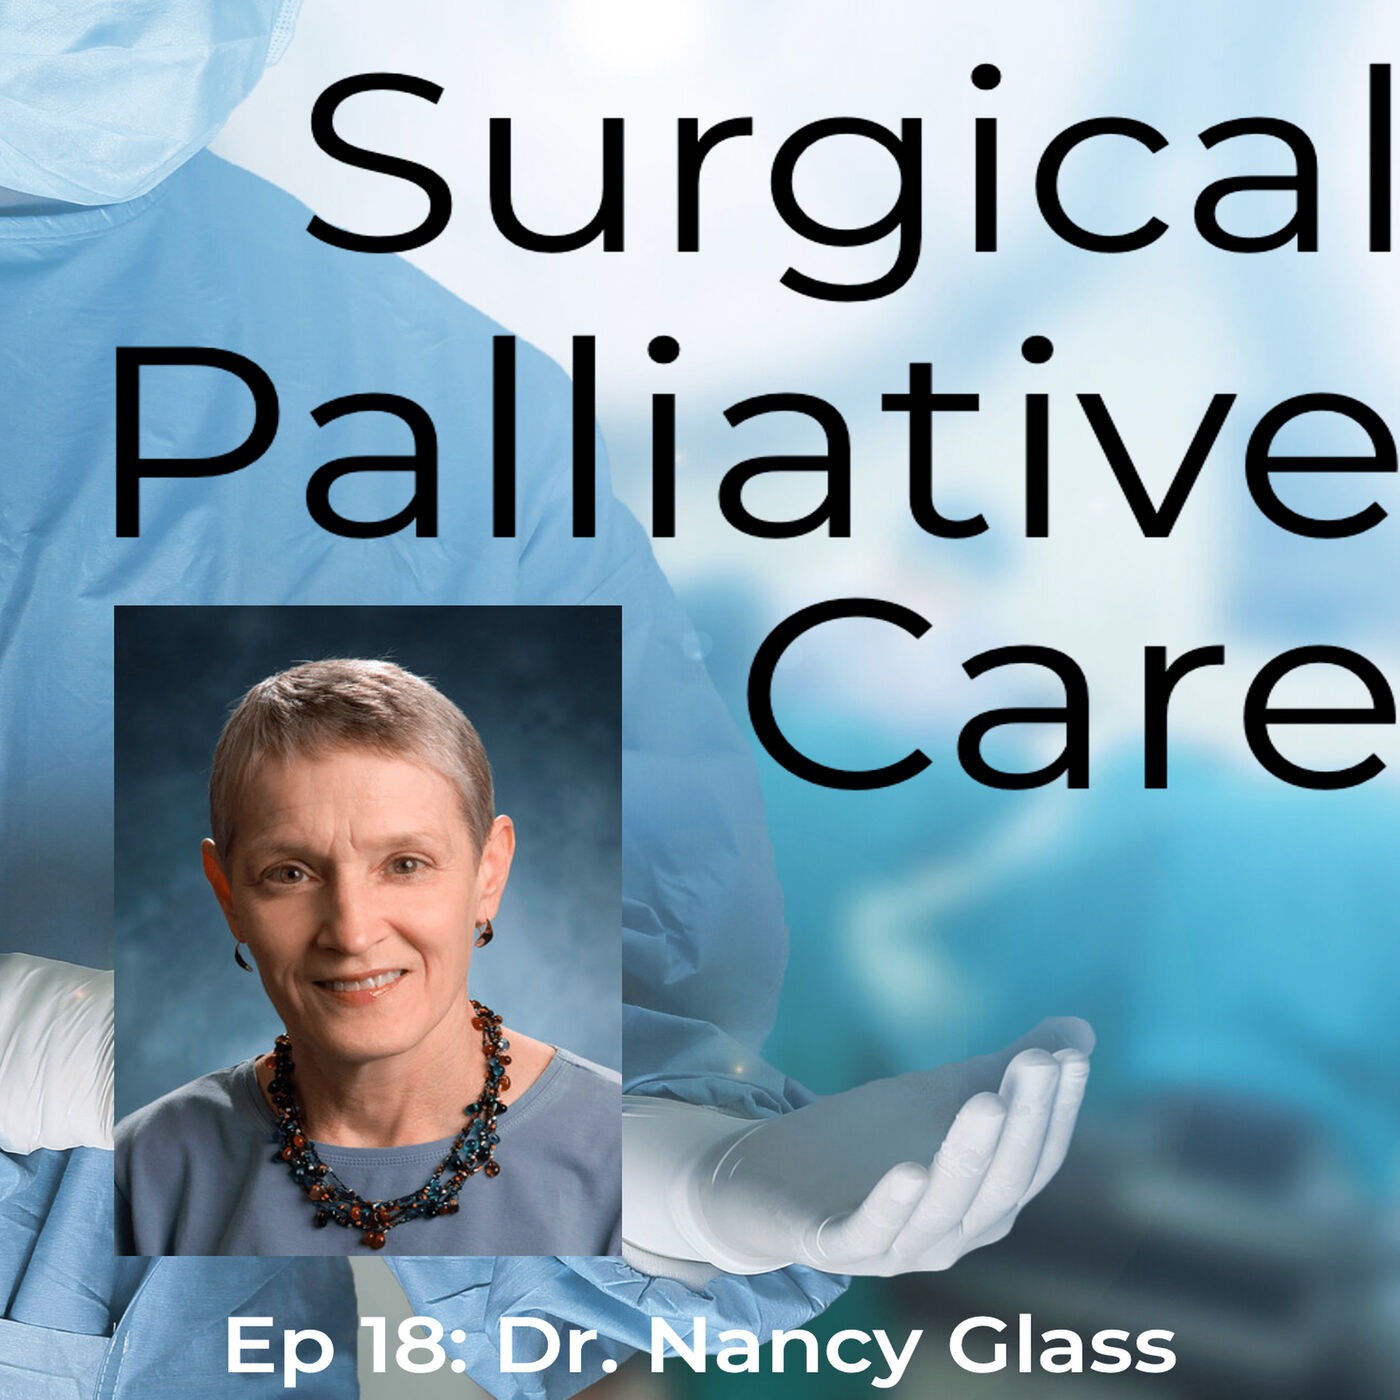 Dr. Nancy Glass:  Palliative Care, Pediatrics and Anesthesia